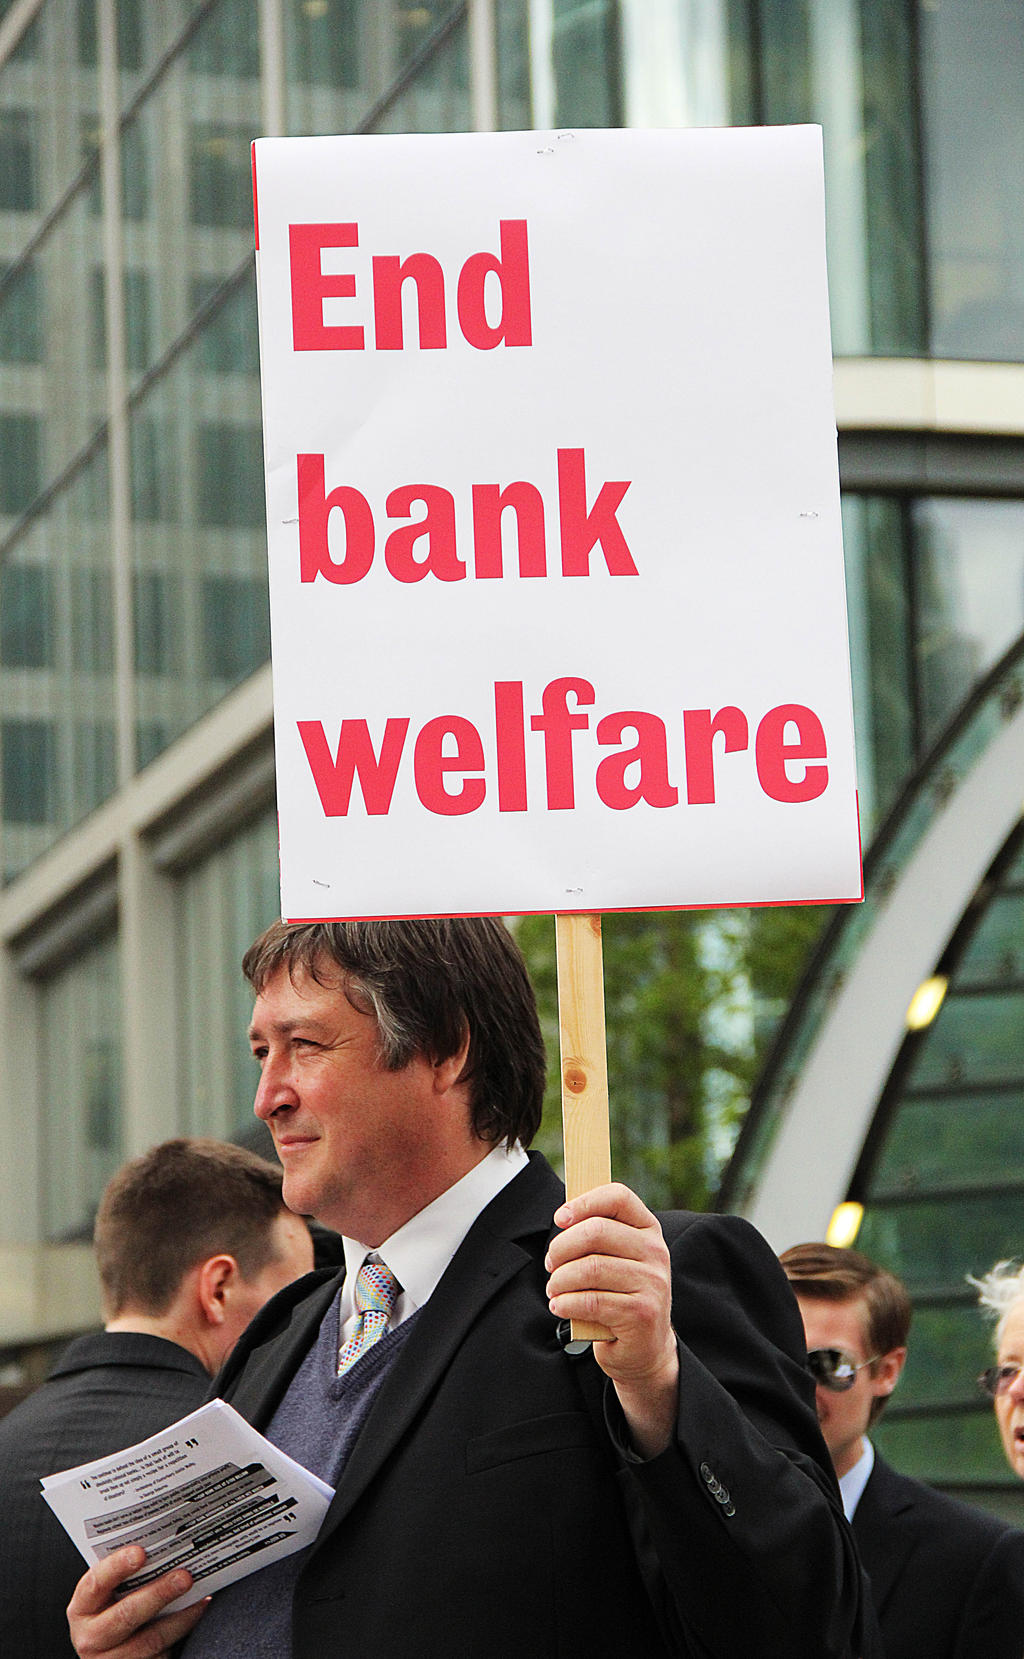 Protest the Banks: End Bank Welfare. by LouHartphotography